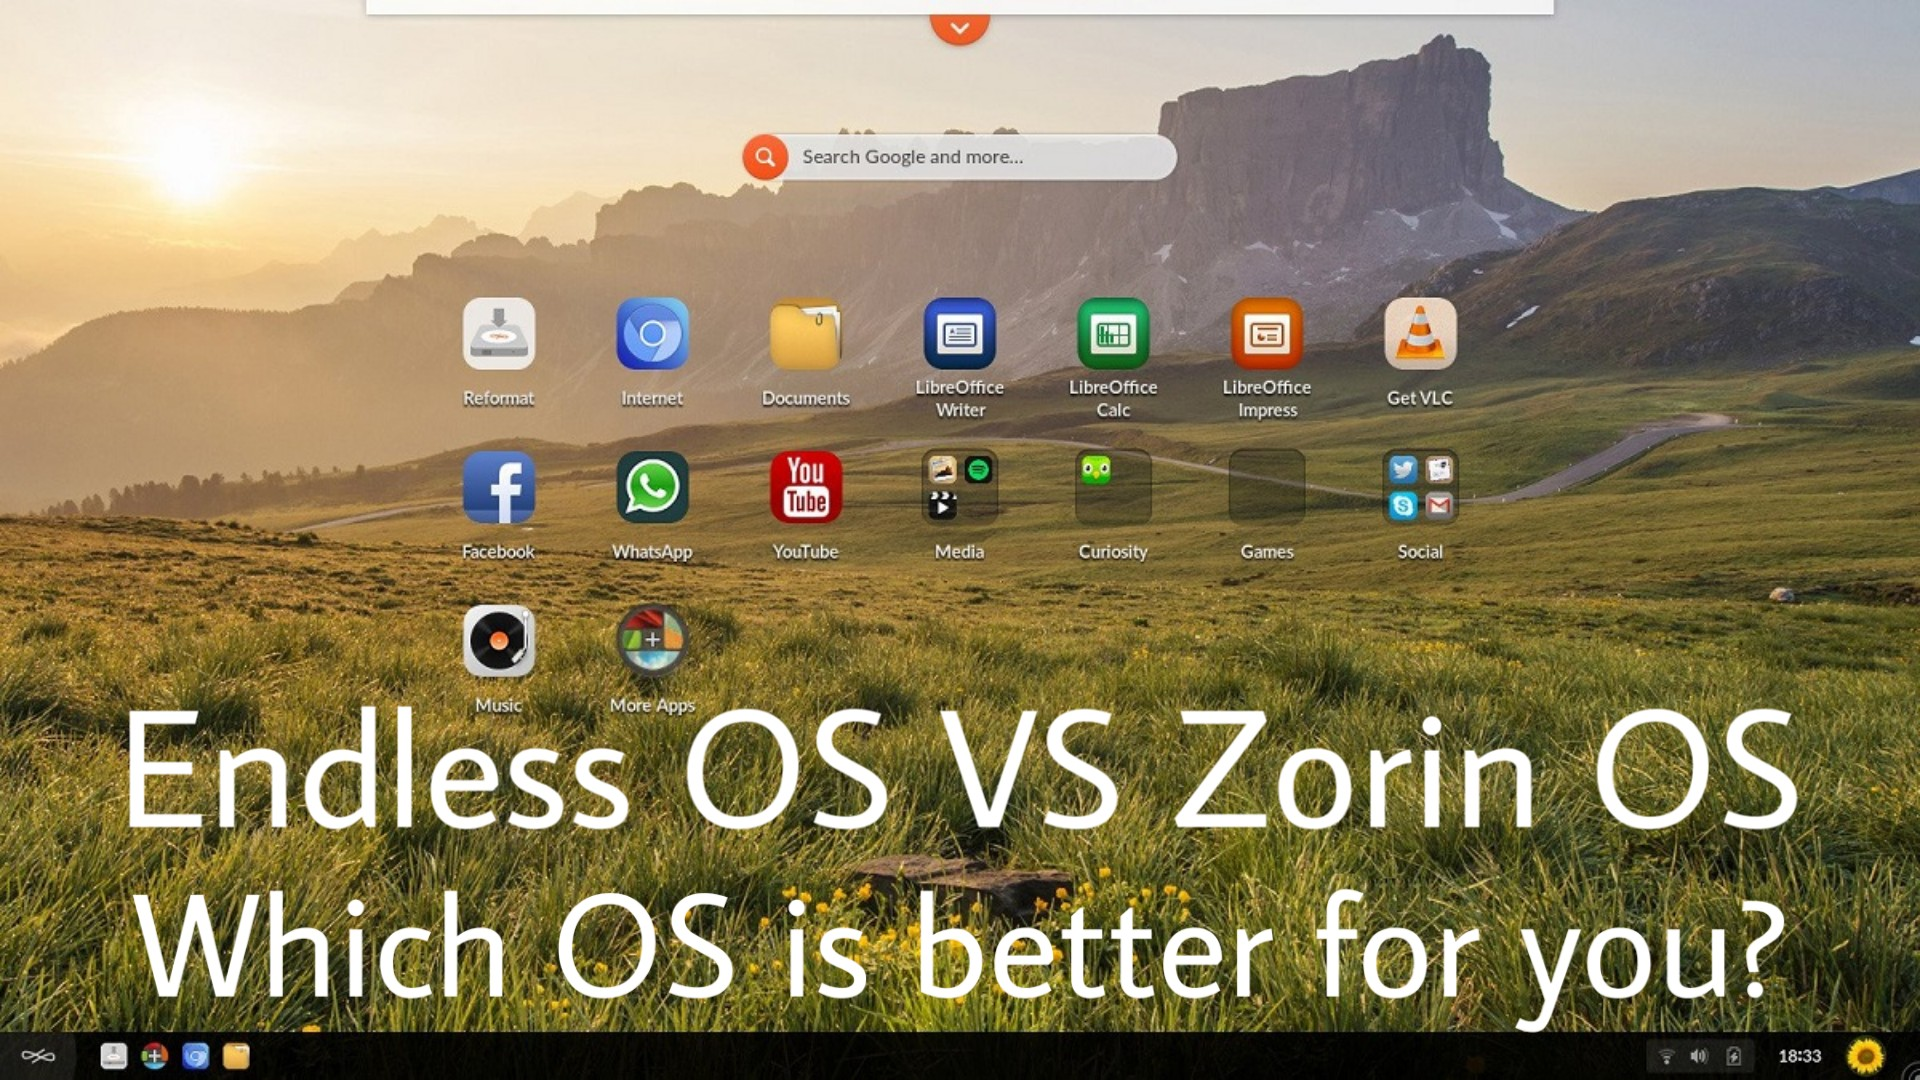 Endless OS vs Zorin OS